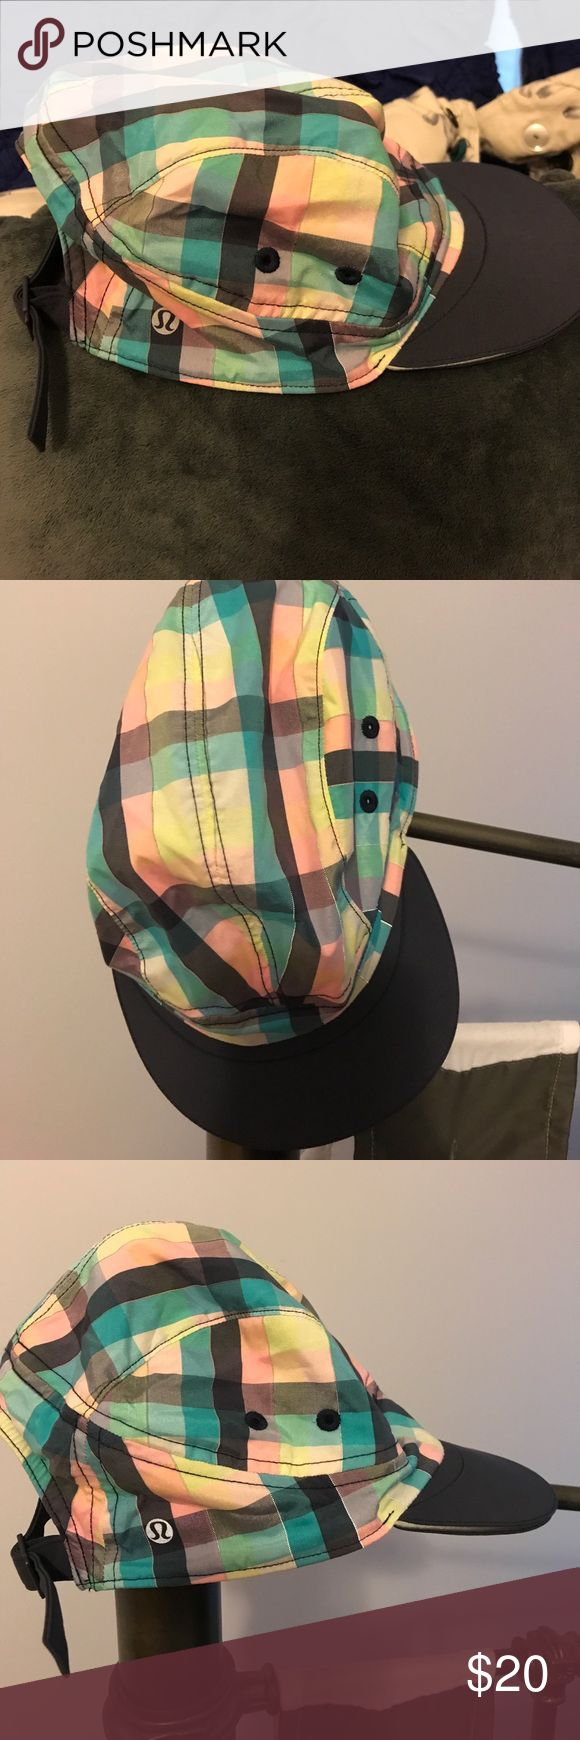 Just in🌺under armour  sun cap Pretty pink madras plaid cap with rigid navy brim in 100% washable polyester& 2 side vents -adjustable NWOT washed but not worn size 0/S Under Armour Accessories Hats